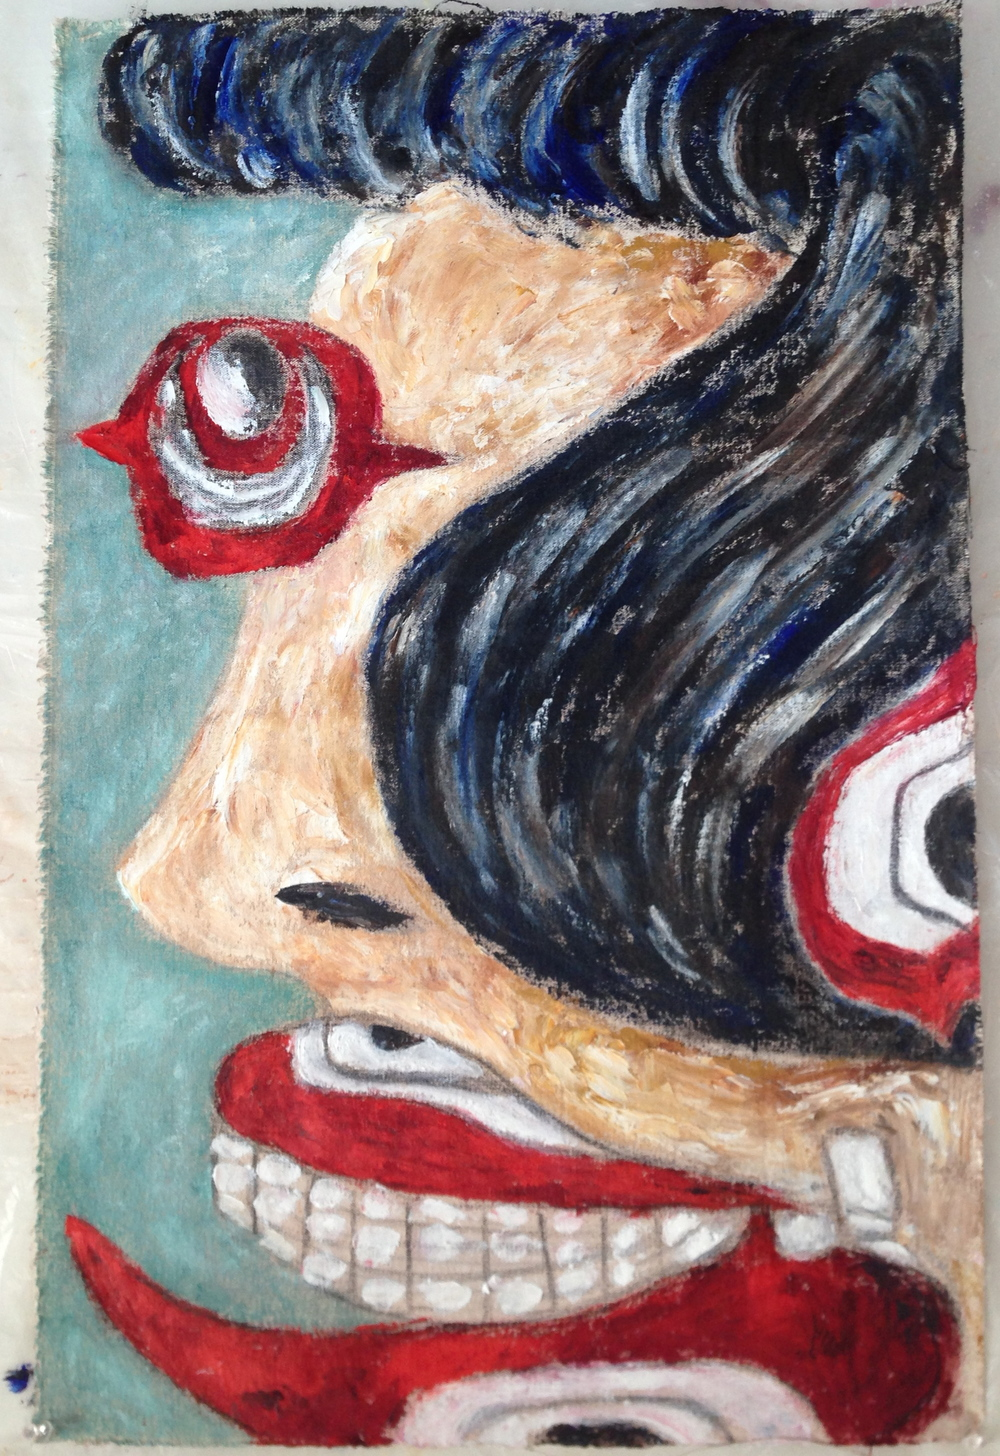 """Eyeball Woman""  17"" x 26.5""  Oil on canvas"